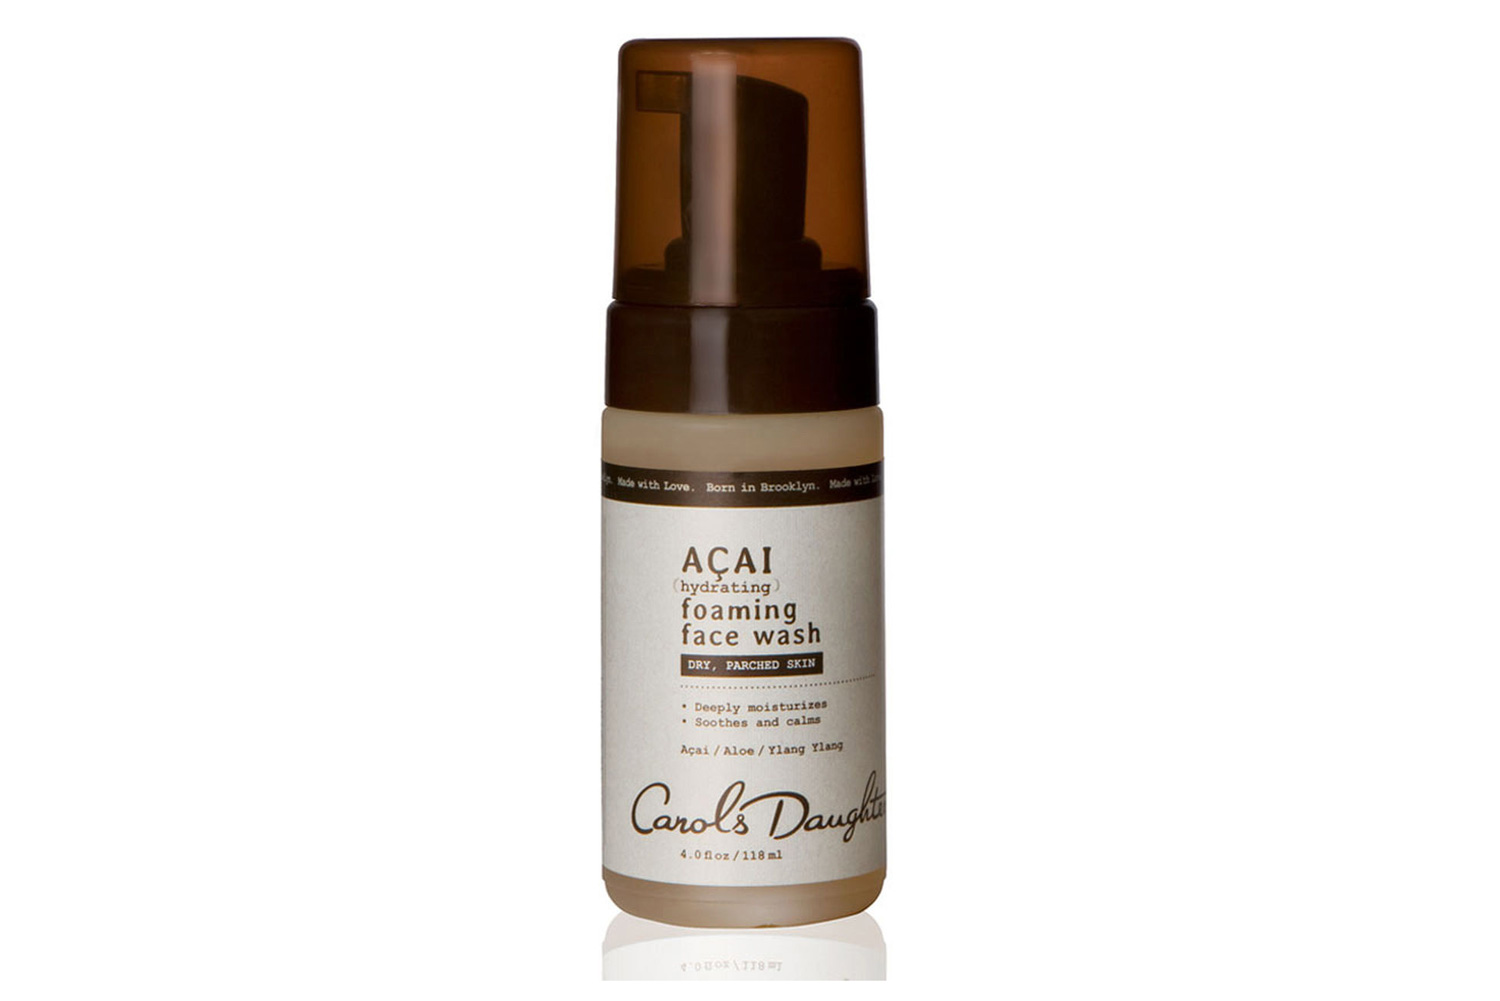 Acai Hydrating Foaming Face Wash